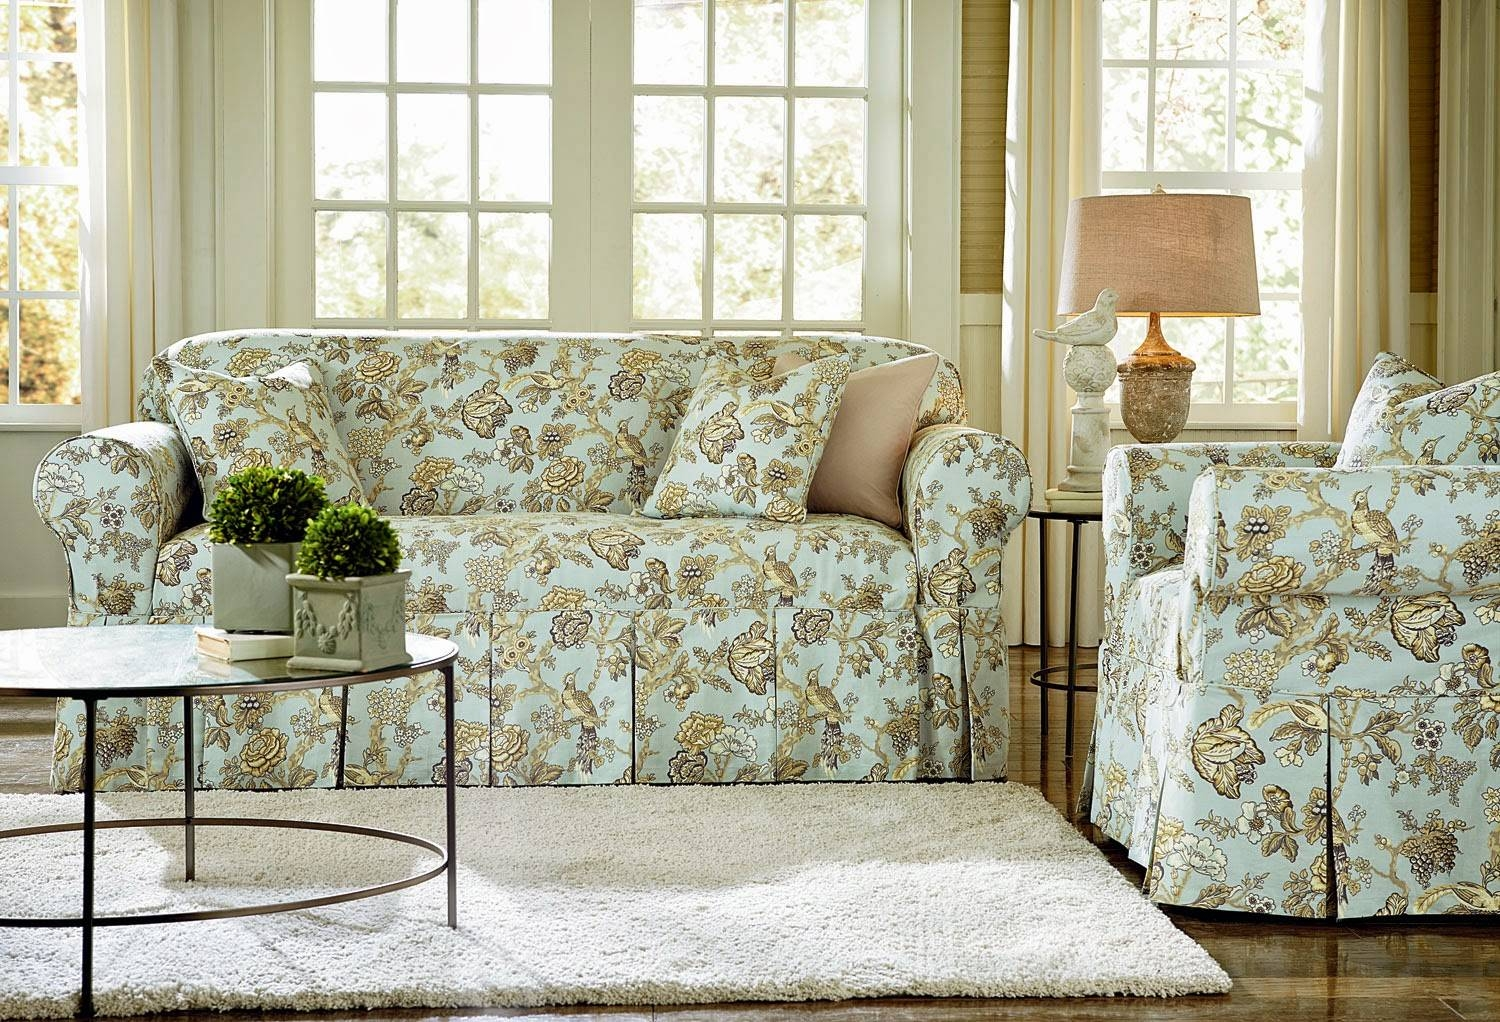 Sure Fit Slipcovers Blog regarding Floral Sofa Slipcovers (Image 12 of 15)